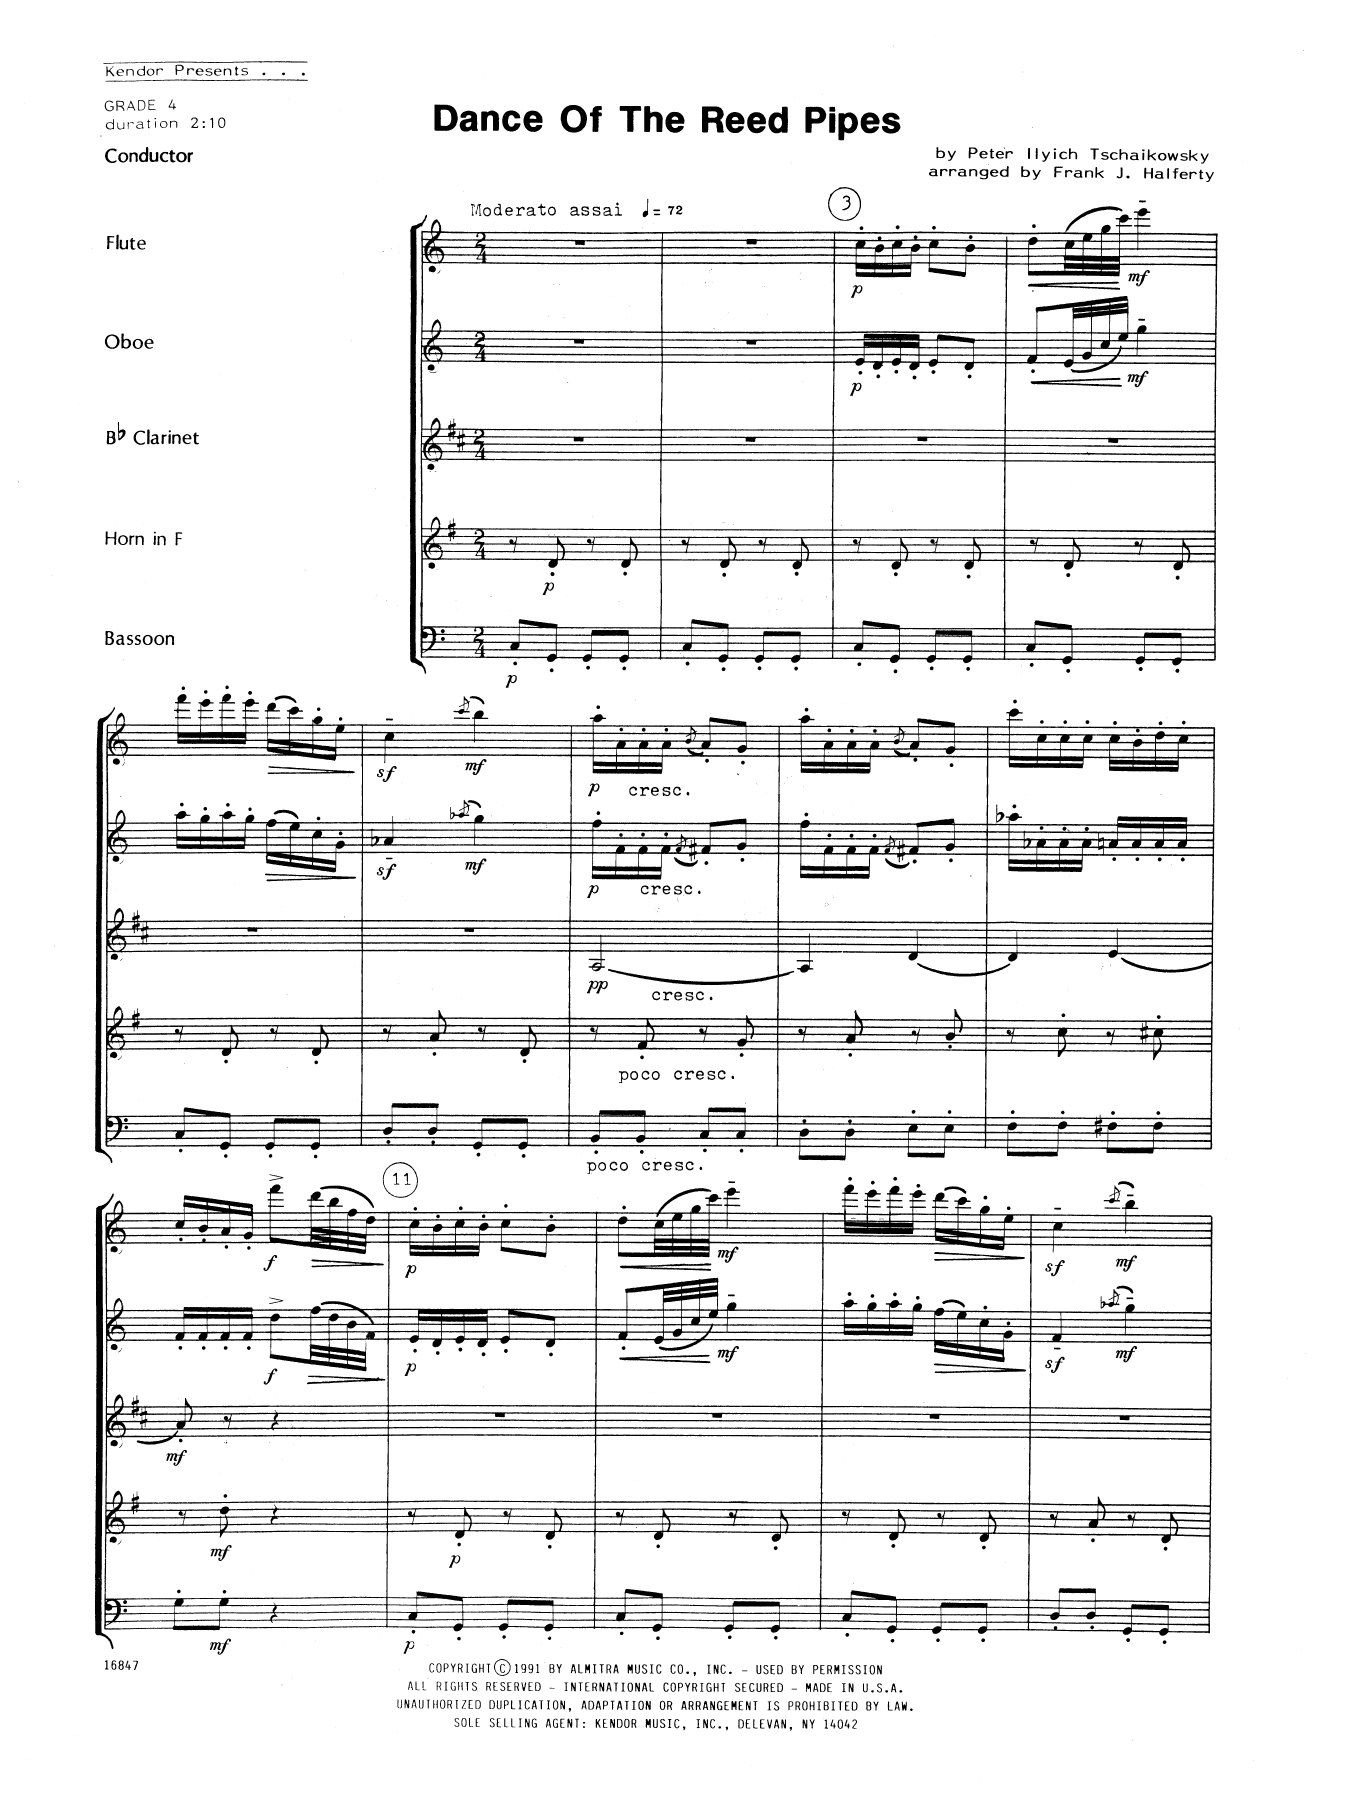 Dance Of The Reed Pipes (COMPLETE) sheet music for wind quintet by Frank J. Halferty, Pyotr Ilyich Tchaikovsky and Tschaikowsky. Score Image Preview.